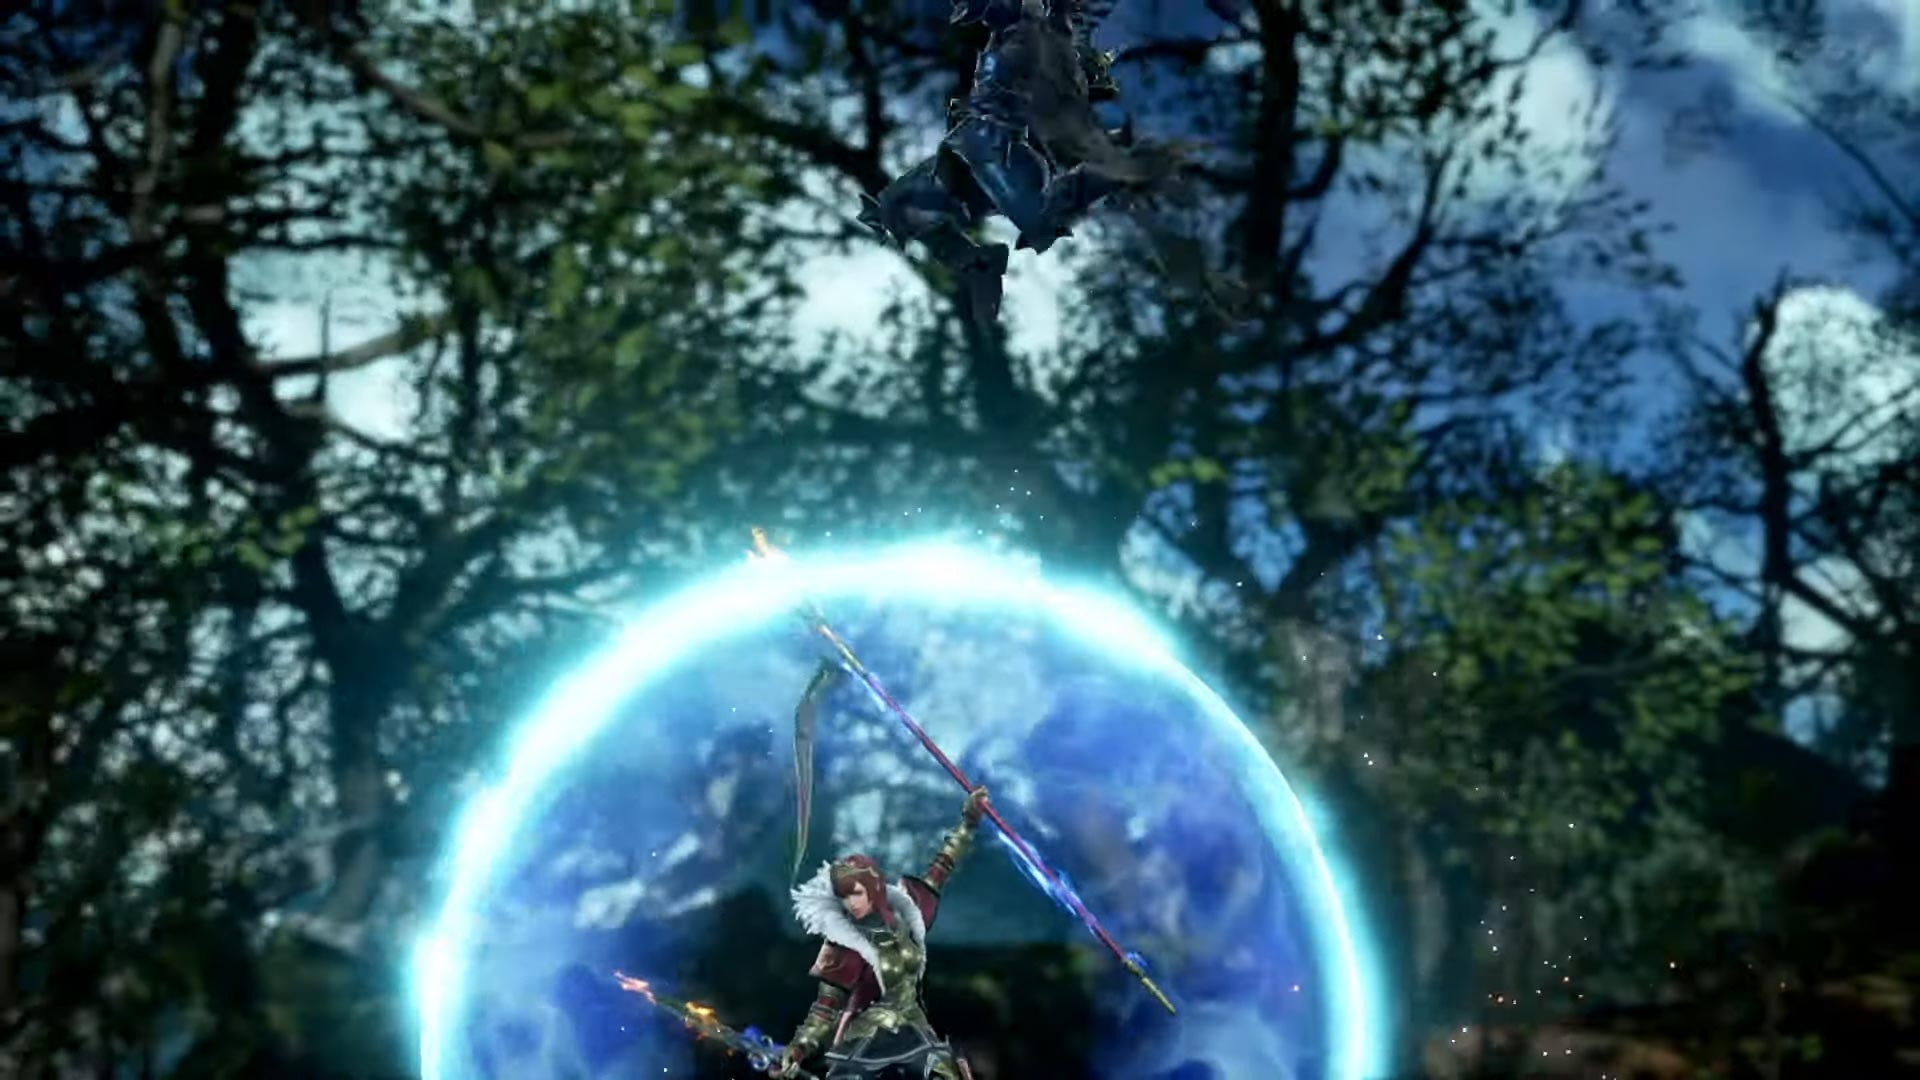 Soul Calibur 6 Hilde Reveal Trailer Gallery 6 out of 9 image gallery